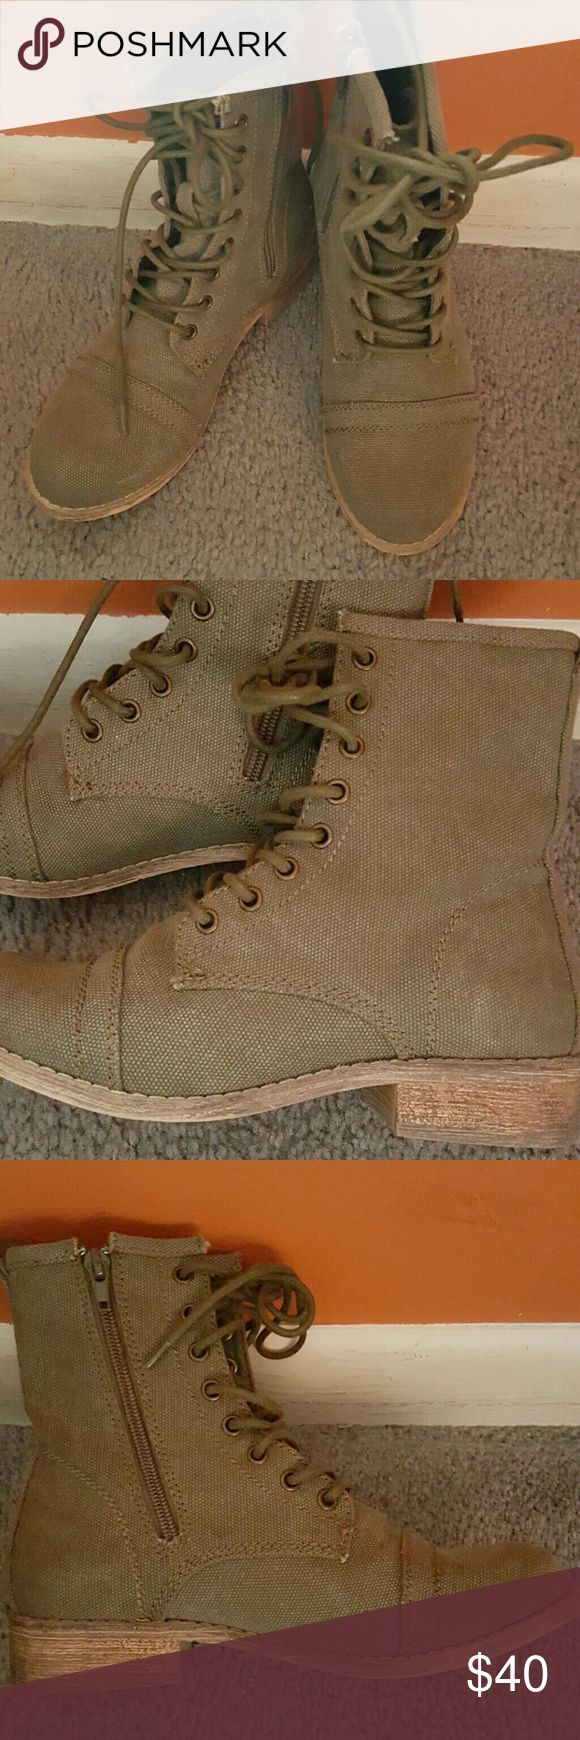 Canvas lace-up booties Fairly new, canvas material with side zipper for easy on and easy off. Olive green color MIA Shoes Ankle Boots & Booties